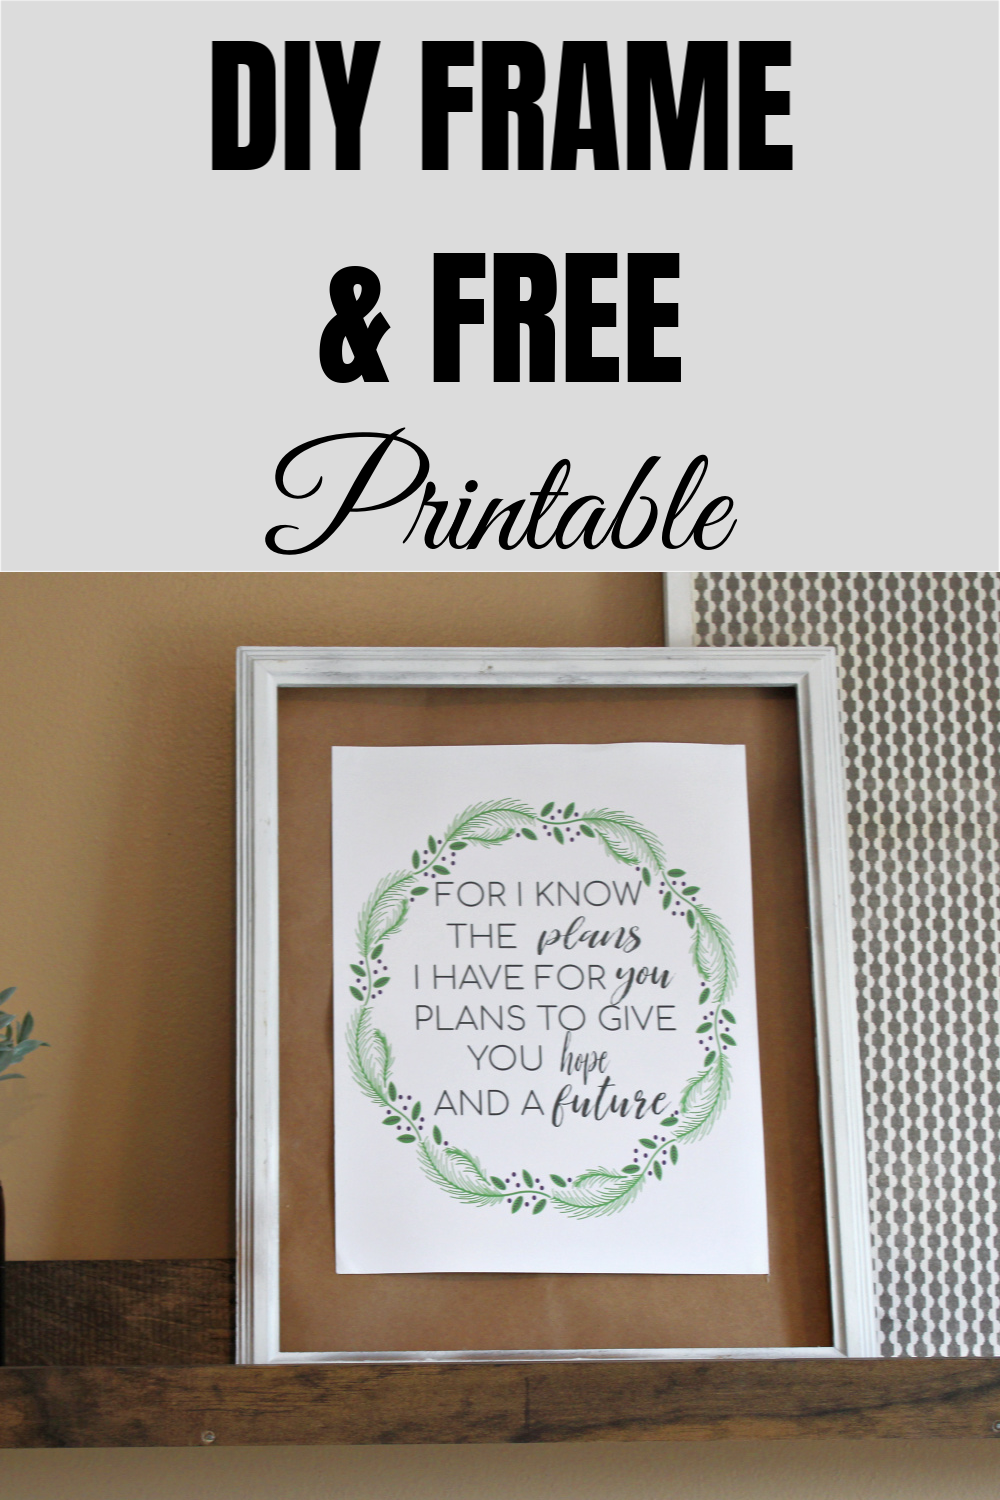 Hey guys, I'm back with another Free Printable – For I Know! This is an 8×10 printable that can fit in some of my DIY Frames!